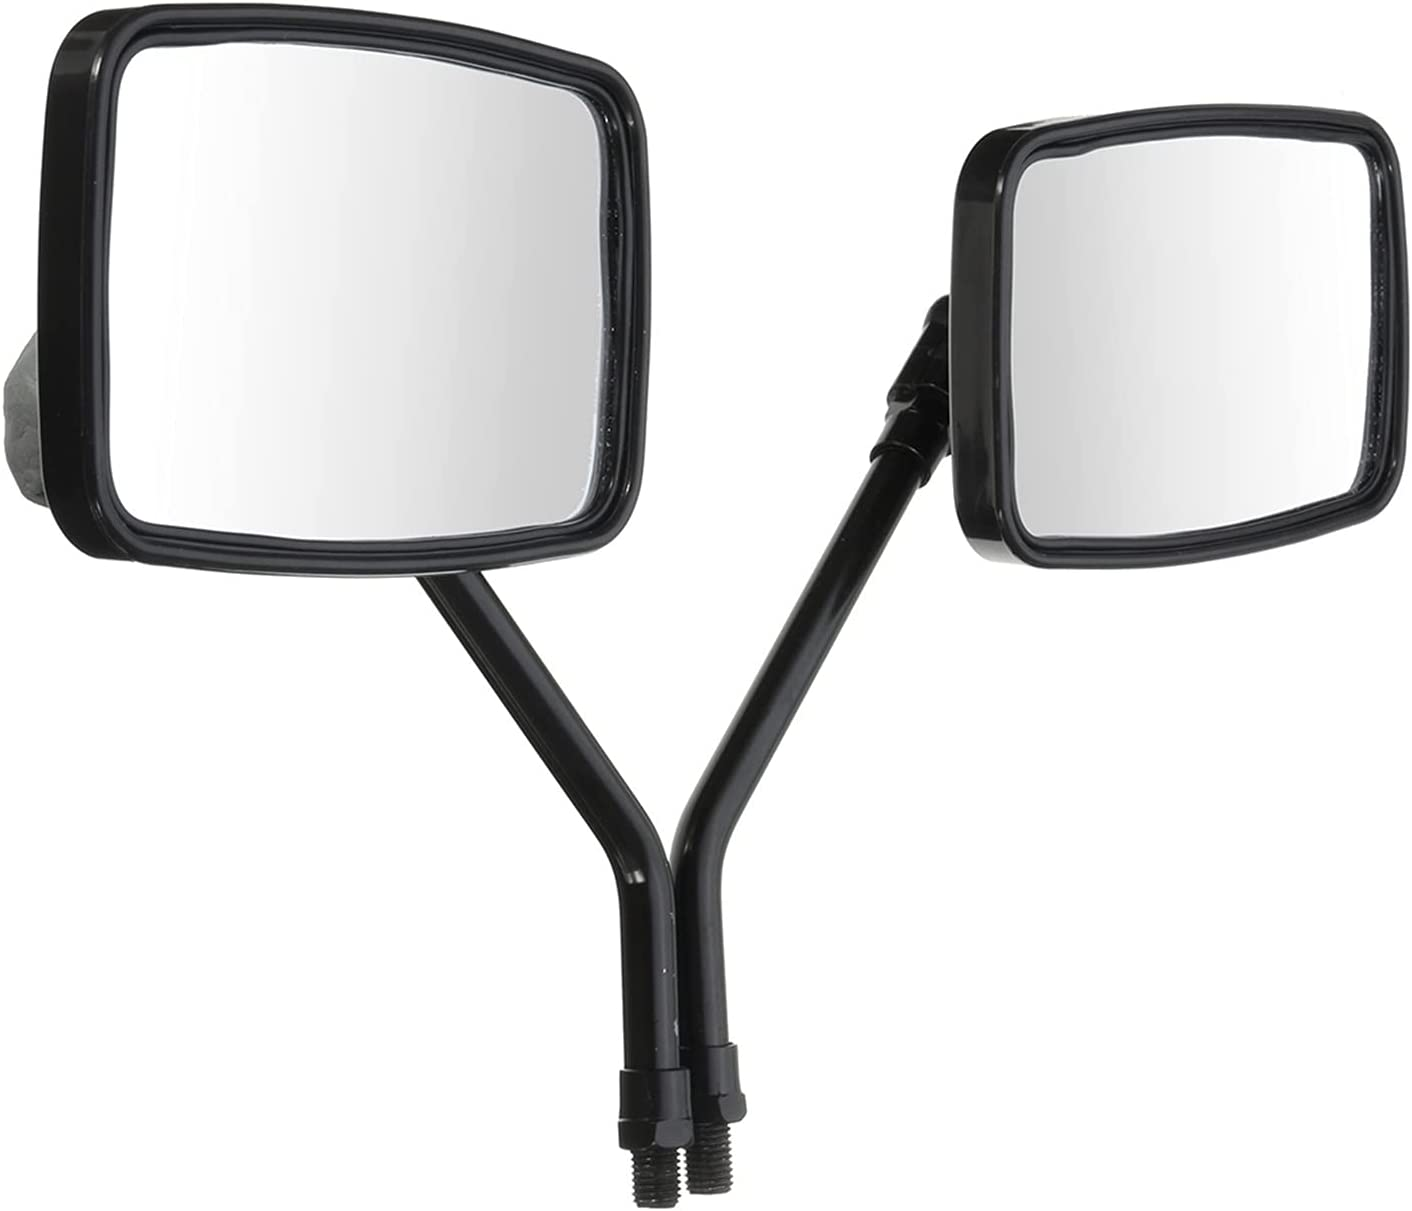 HBSM Limited Special Price Motorcycle Rear View Mirror Side Max 49% OFF for Mirrors Magna 10mm